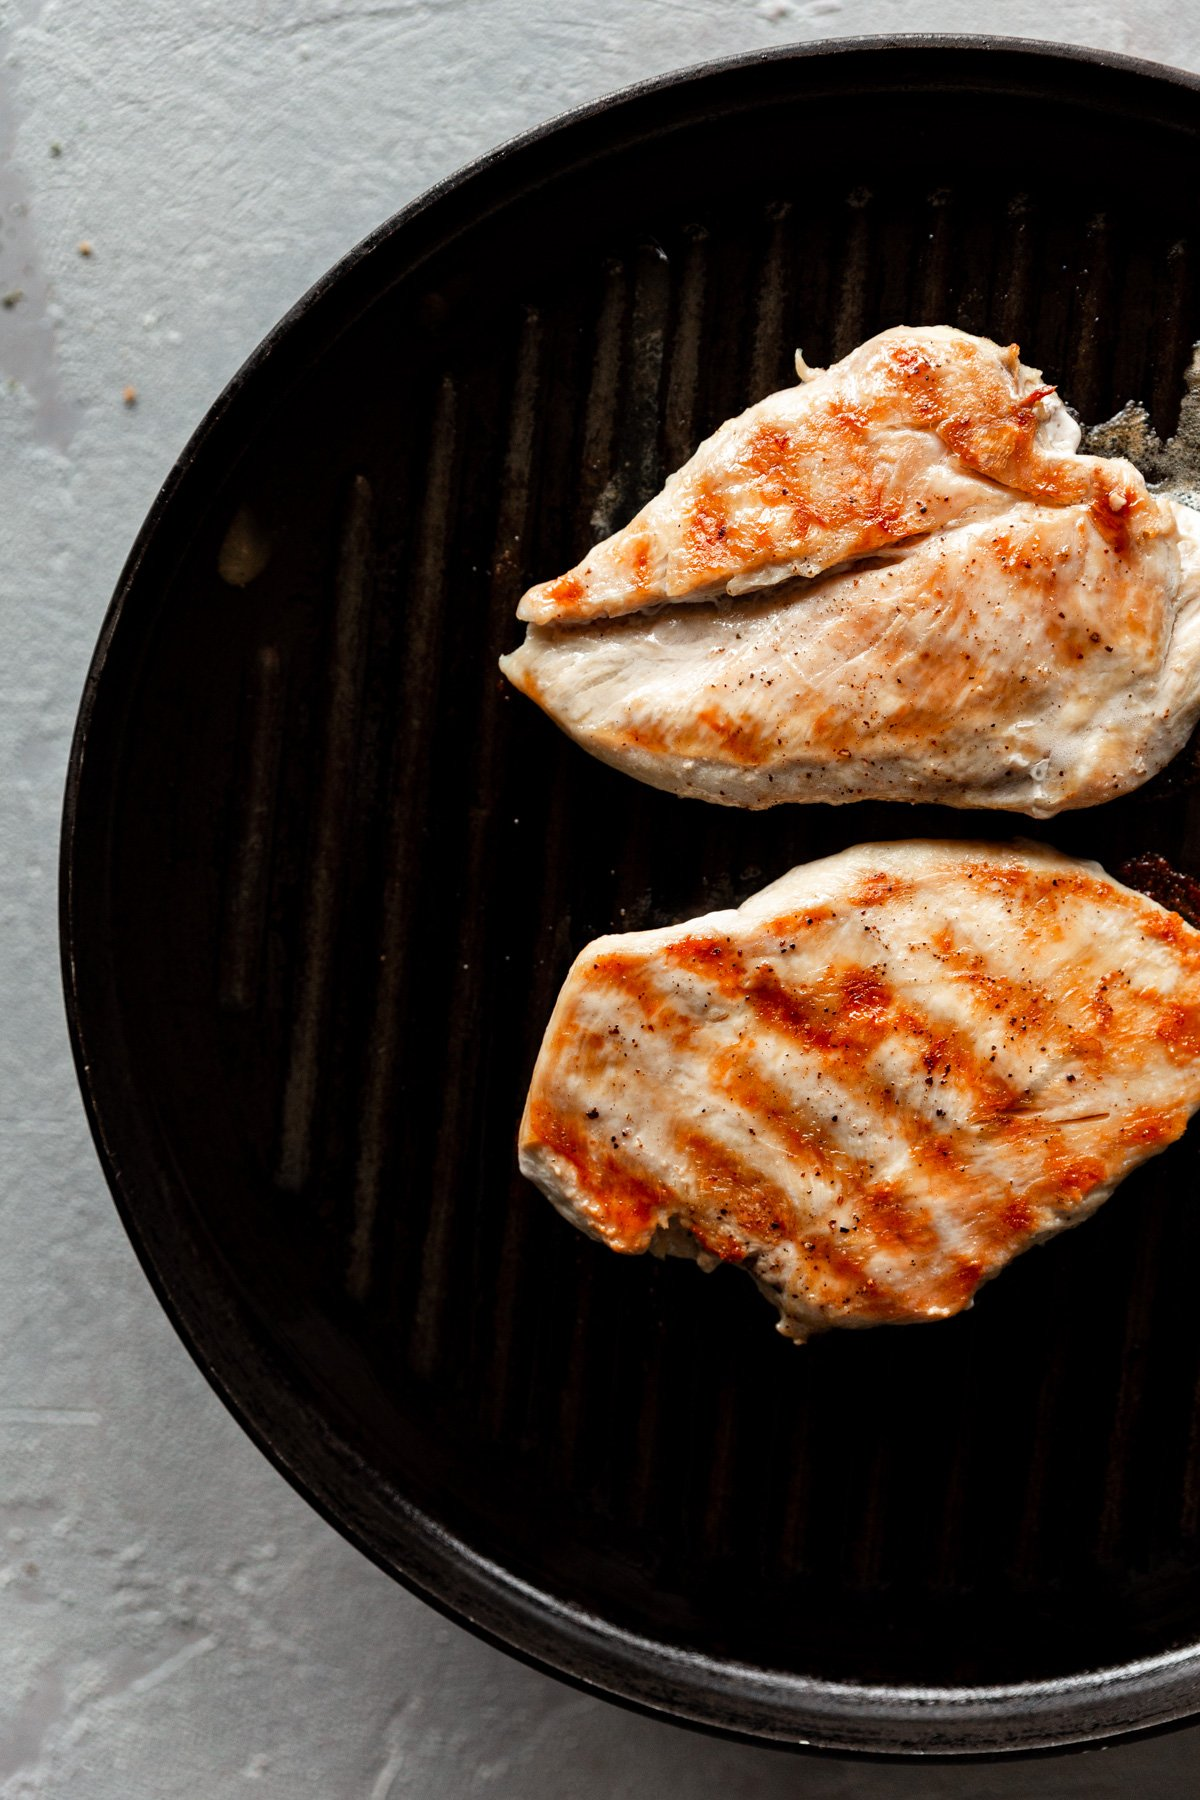 grill pan with two grilled chicken breast, grill marks facing up